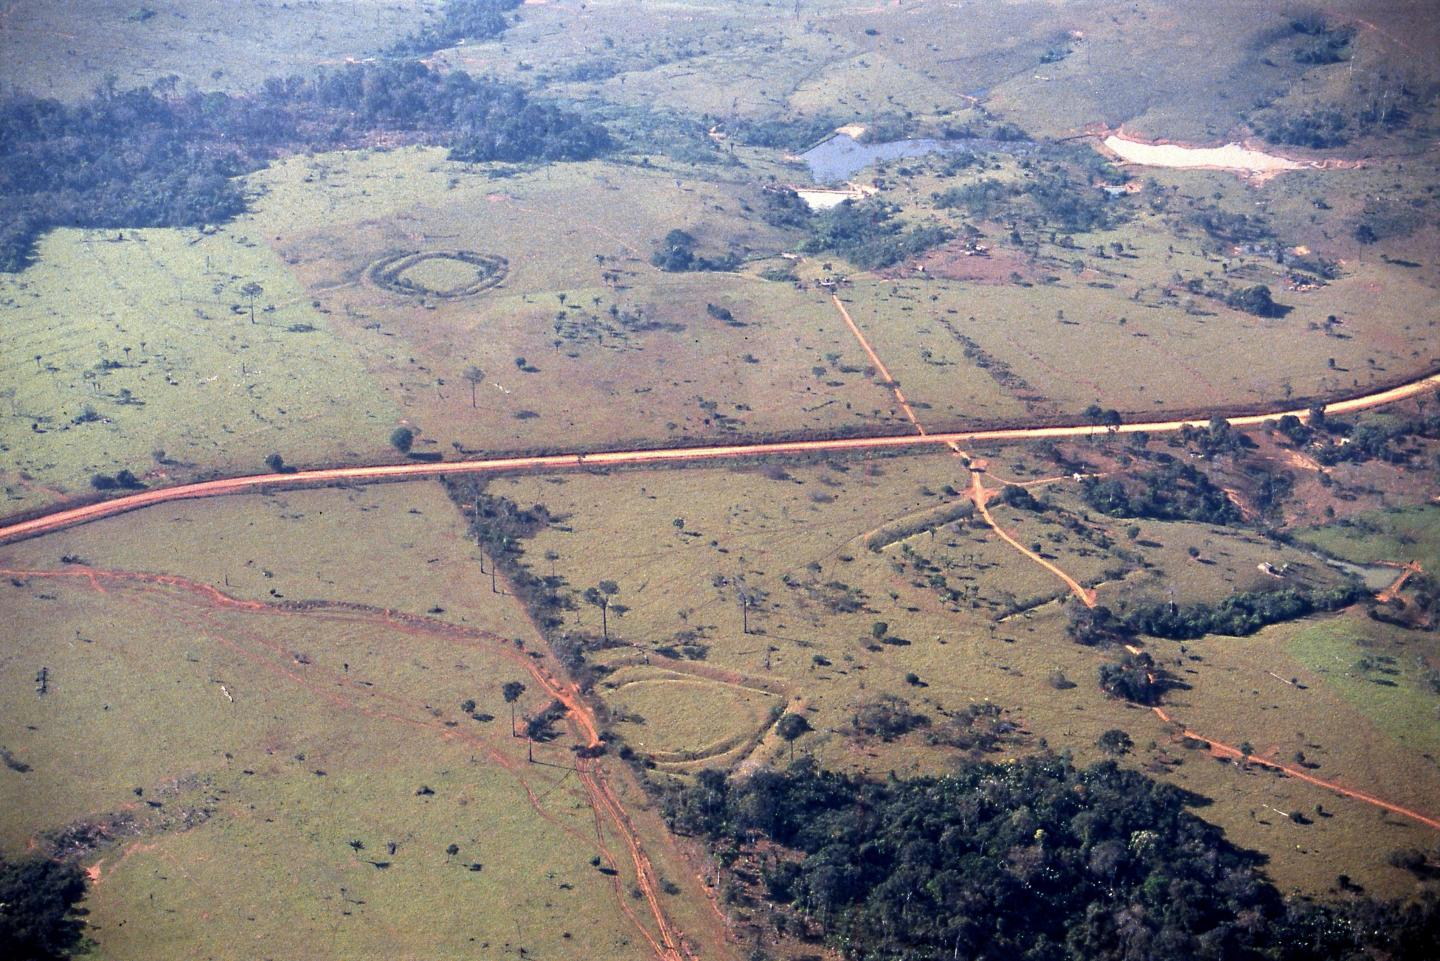 research on the meaning of ancient geometric earthworks in